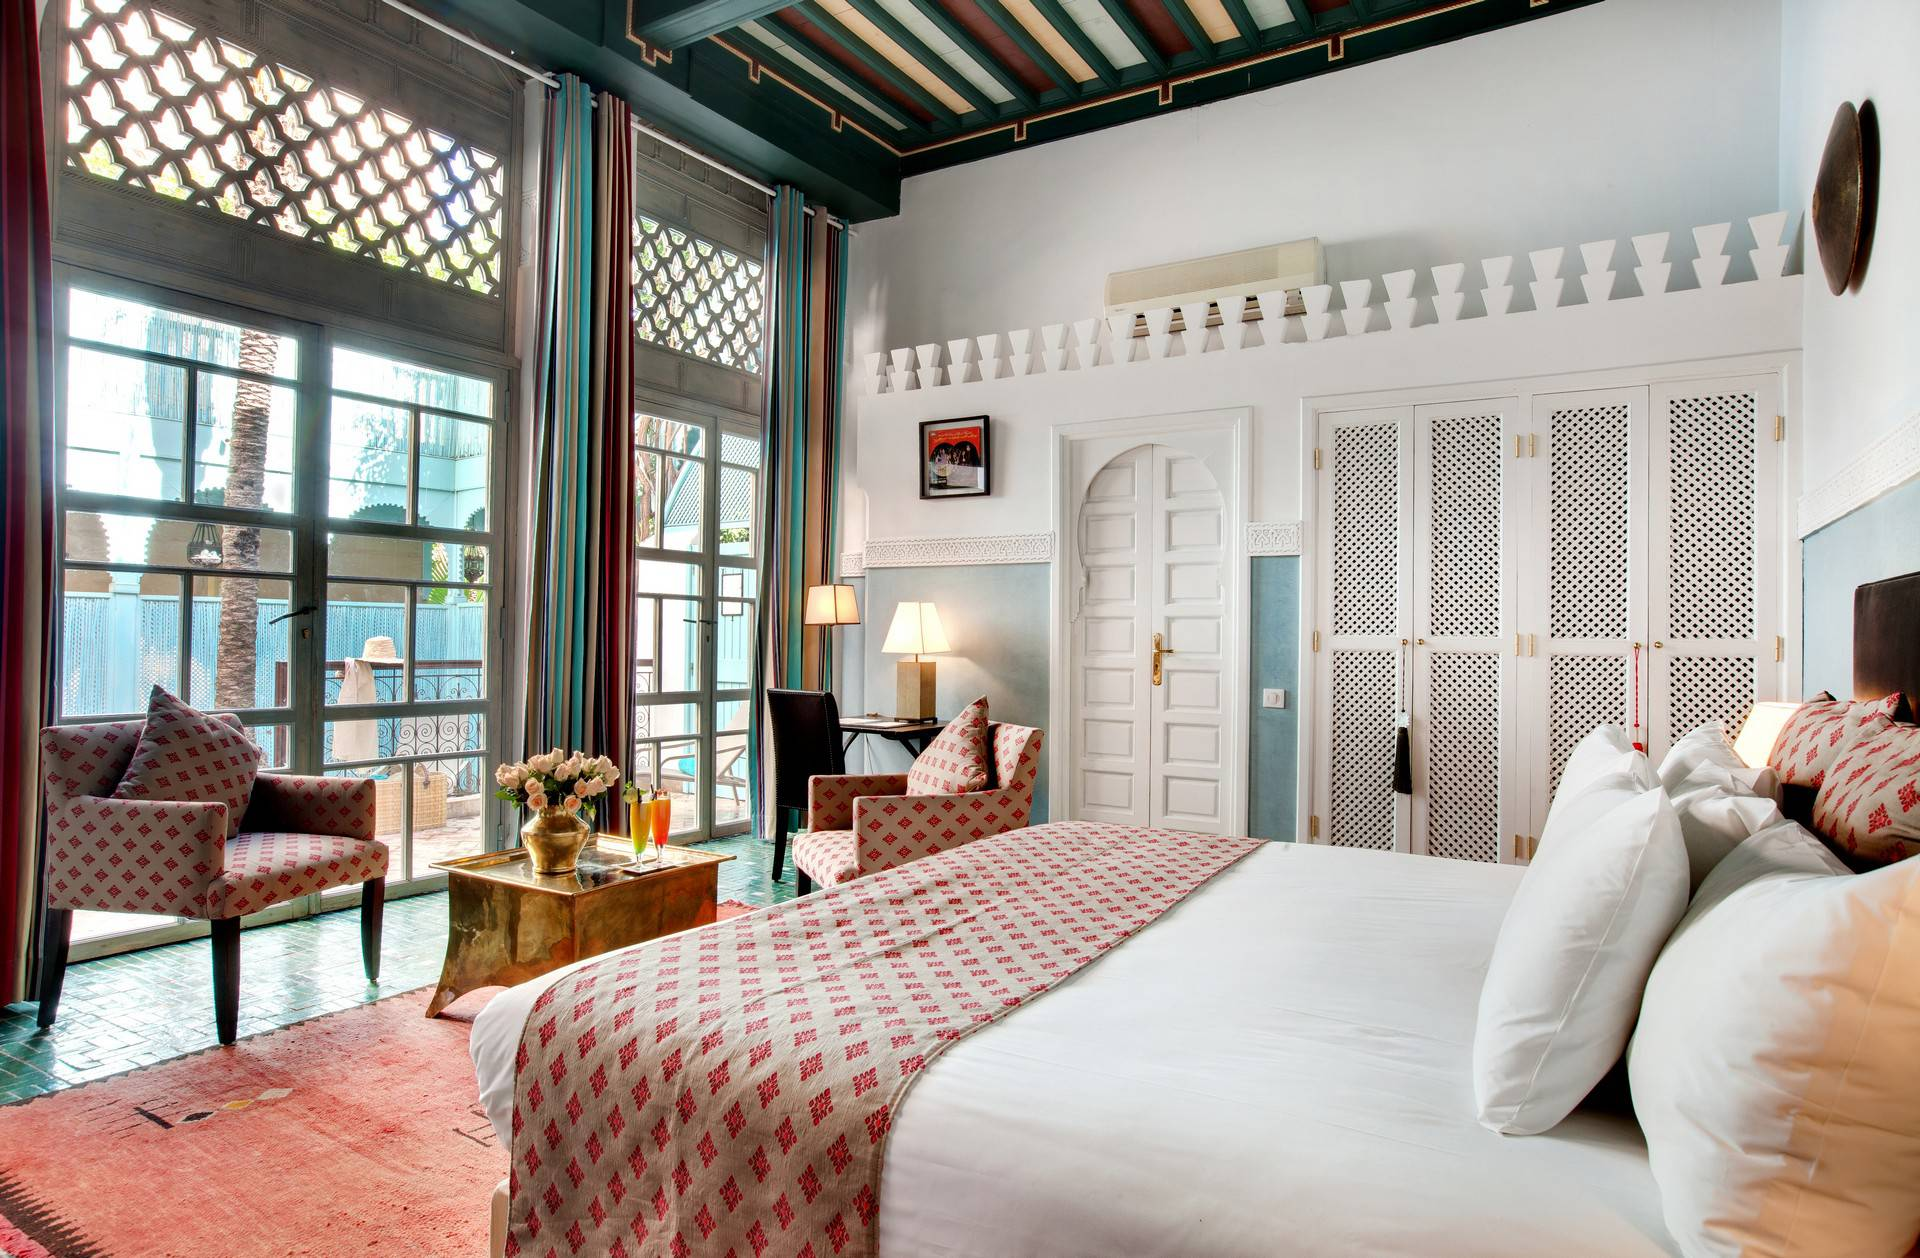 The superb Sultana rooms